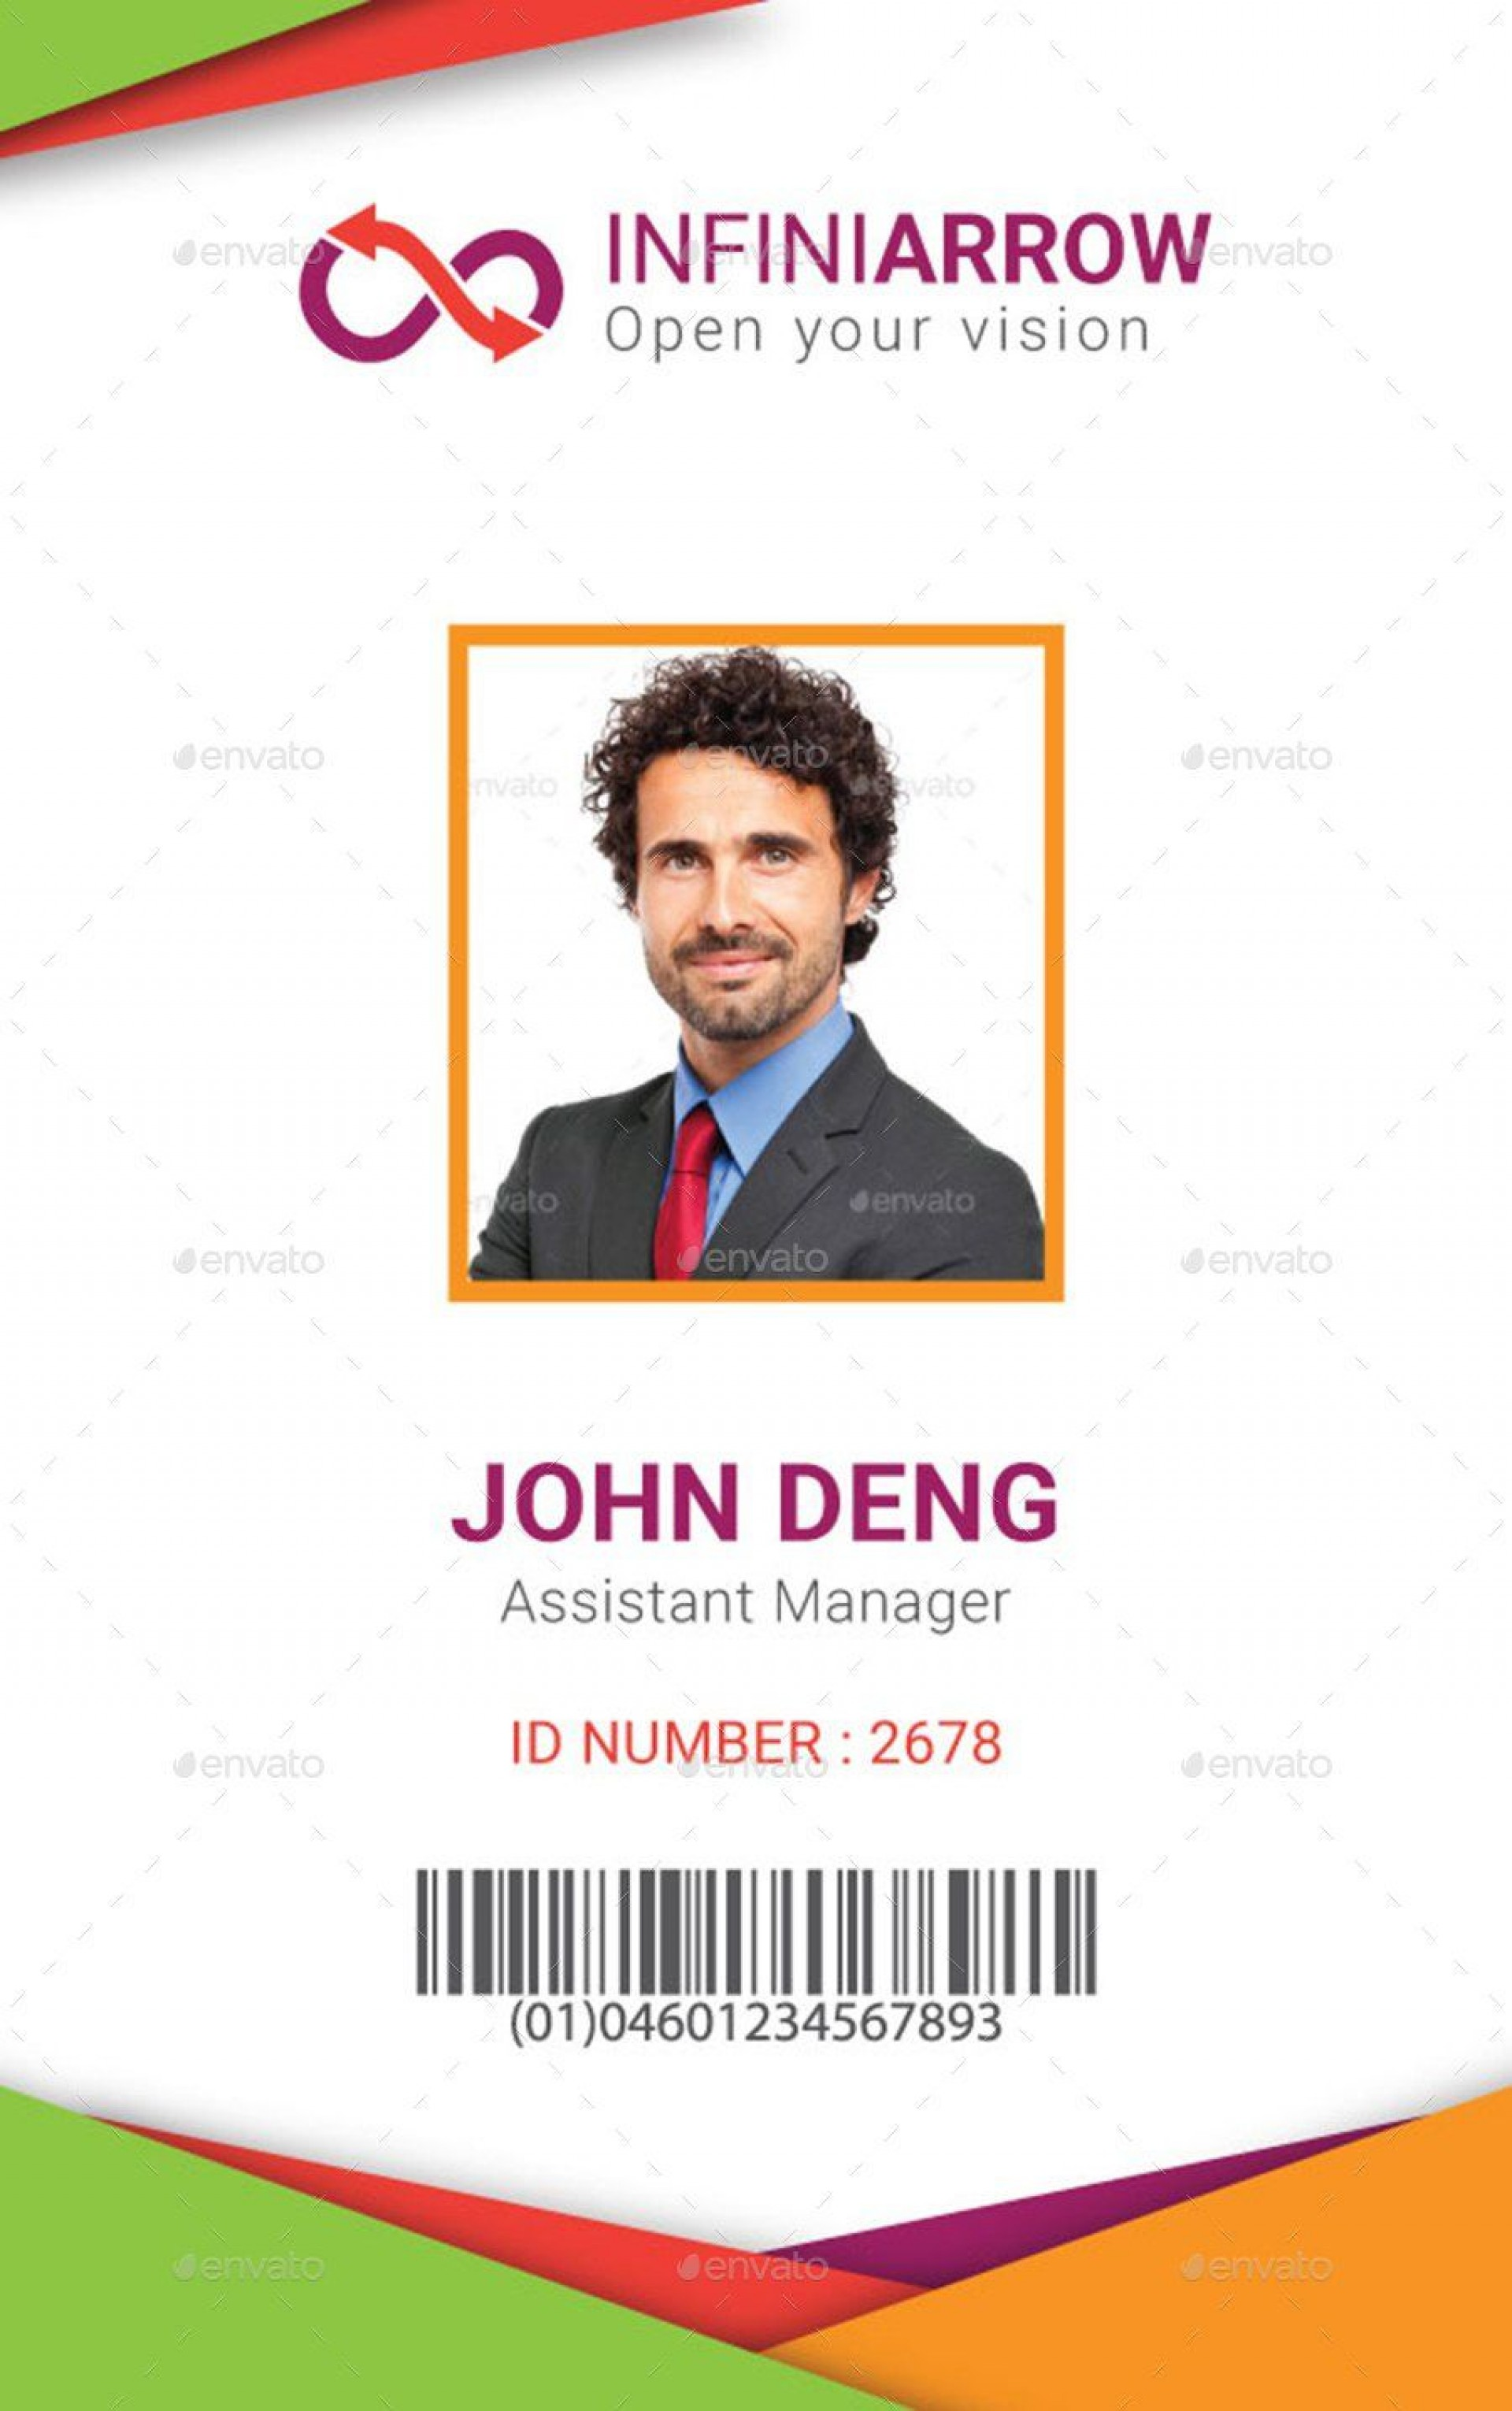 002 Frightening Id Badge Template Word Photo  Free Microsoft1920